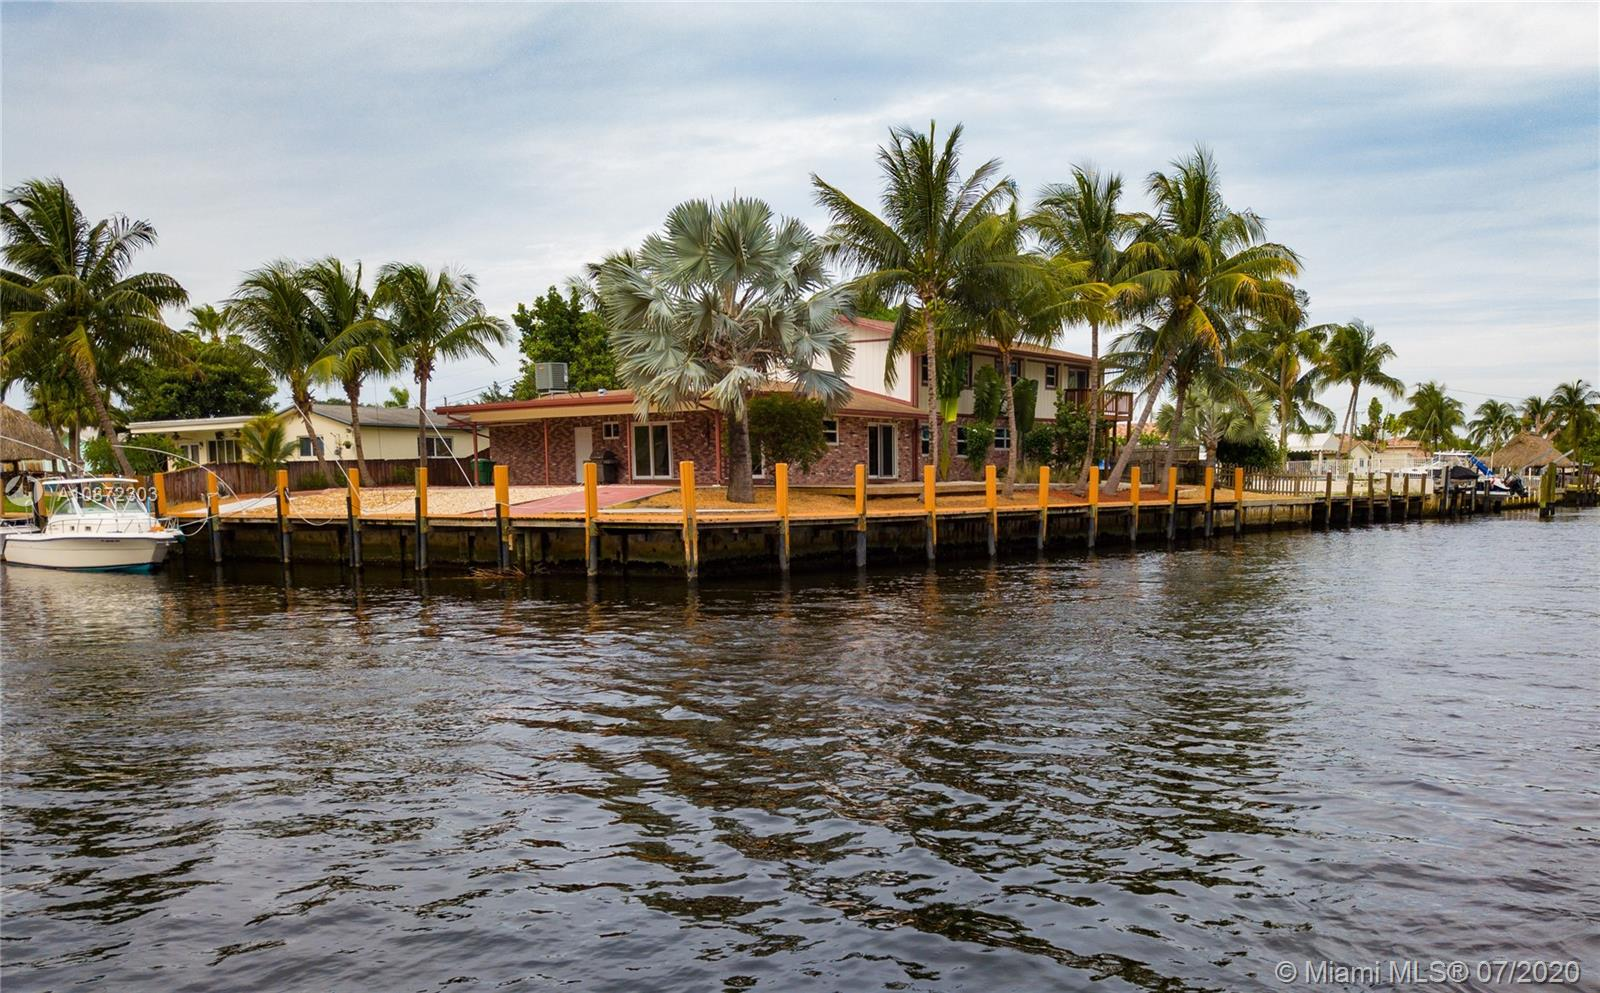 Boater's delight, corner lot with 220' of WATERFRONT and 180' of DOCK on the Dania Cutoff canal & only 1 fixed bridge. CLICK ON VIRTUAL TOUR.One-of-a-kind 2 story home with 4 beds/3.5 baths plus a huge library/den and an oversize 2-car garage. Grand double front door entrance walking into living room with 18-foot ceilings, gorgeous custom-built kitchen with stainless steel appliances, granite counter tops and beautiful tile back splash and bar-top overseeing an open floor plan to family-dining room.This house is UNIQUE in many ways. IT has numerous exterior entrances, 2 porches, so you always have a cool breeze, side parking for a large trailer or RV, parking for 8 cars, very private being in the back of neighborhood on a dead-end road with limited view of neighbors. No HOA Fees.